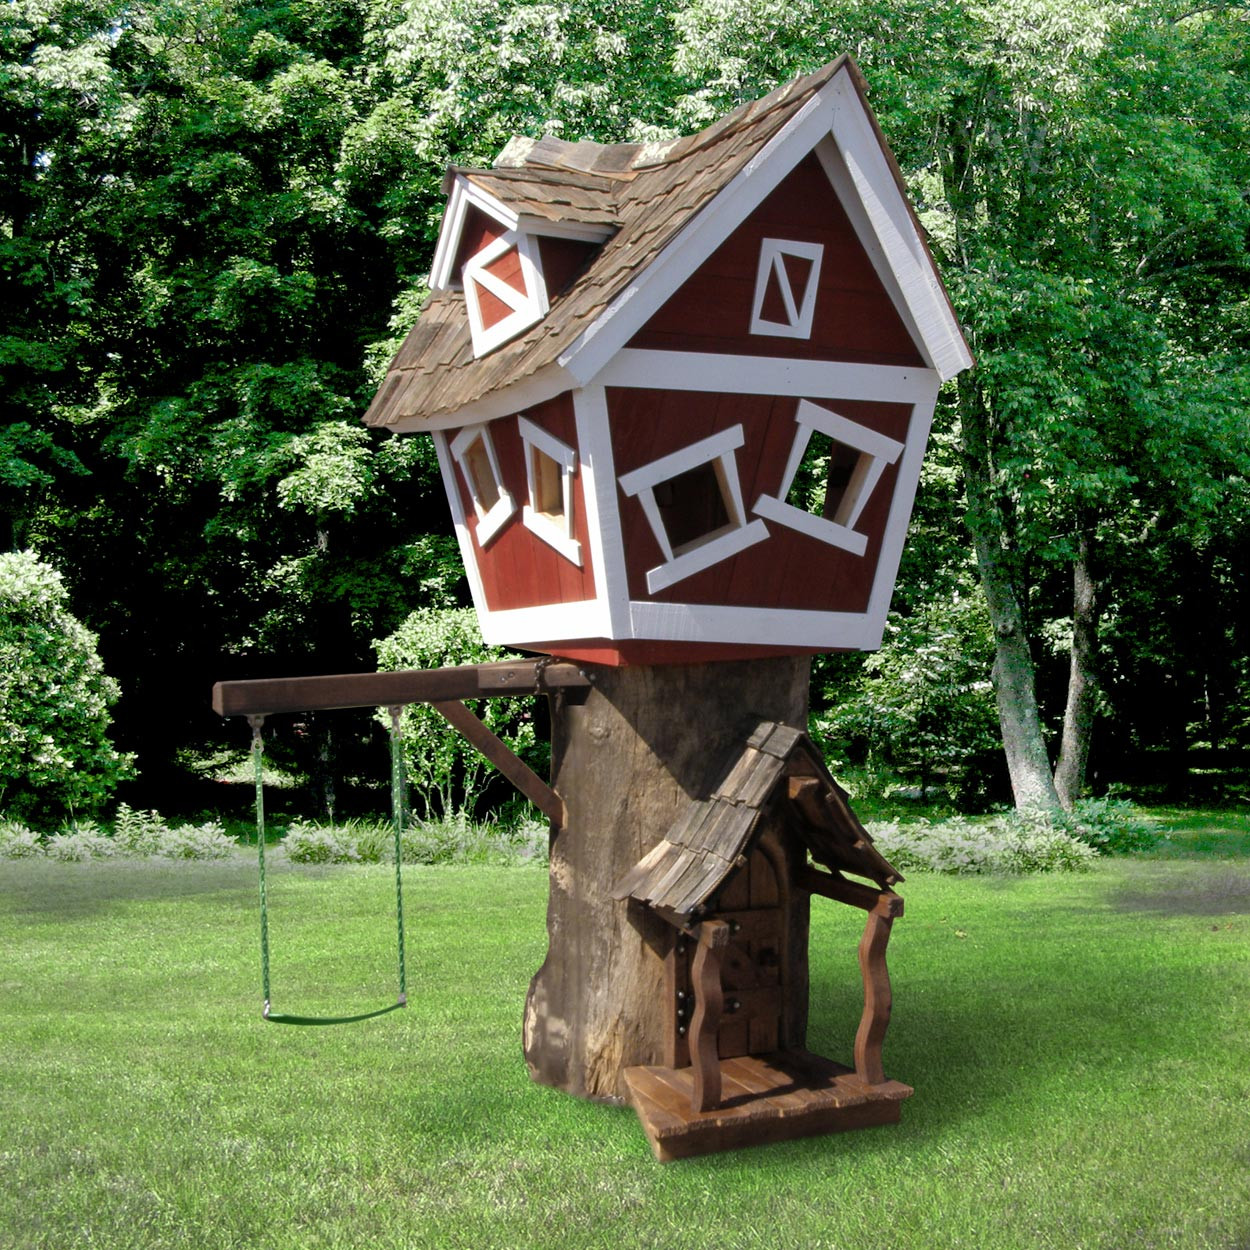 Kids Playhouse Image in Tree House